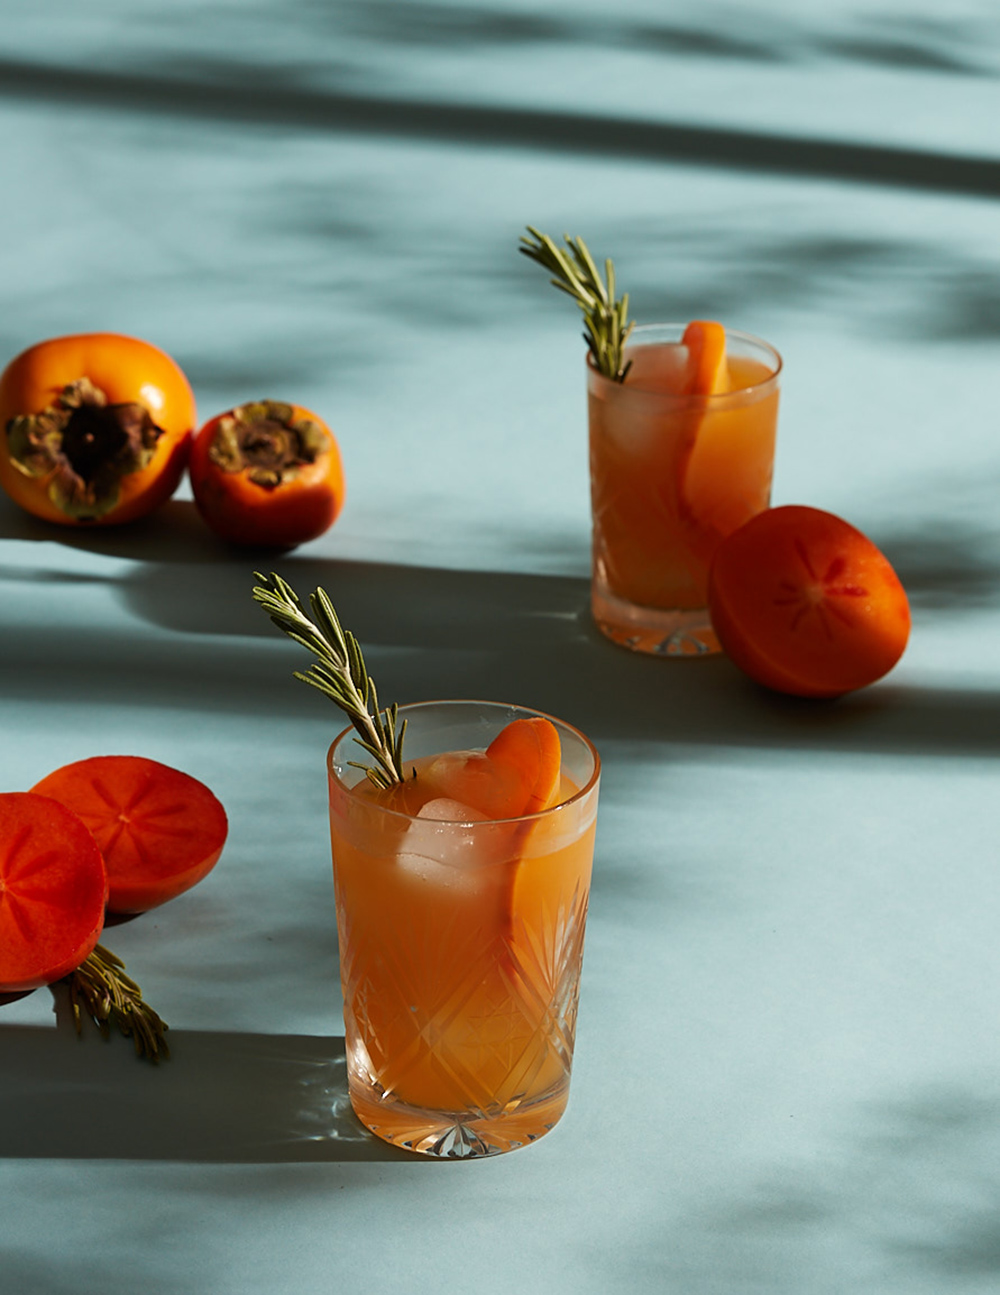 persimmon-smash-cocktail-drinks-stylist-set-designer-propstylist-styling-liefstyle-creative-director-art-director-lauren-becker.jpg